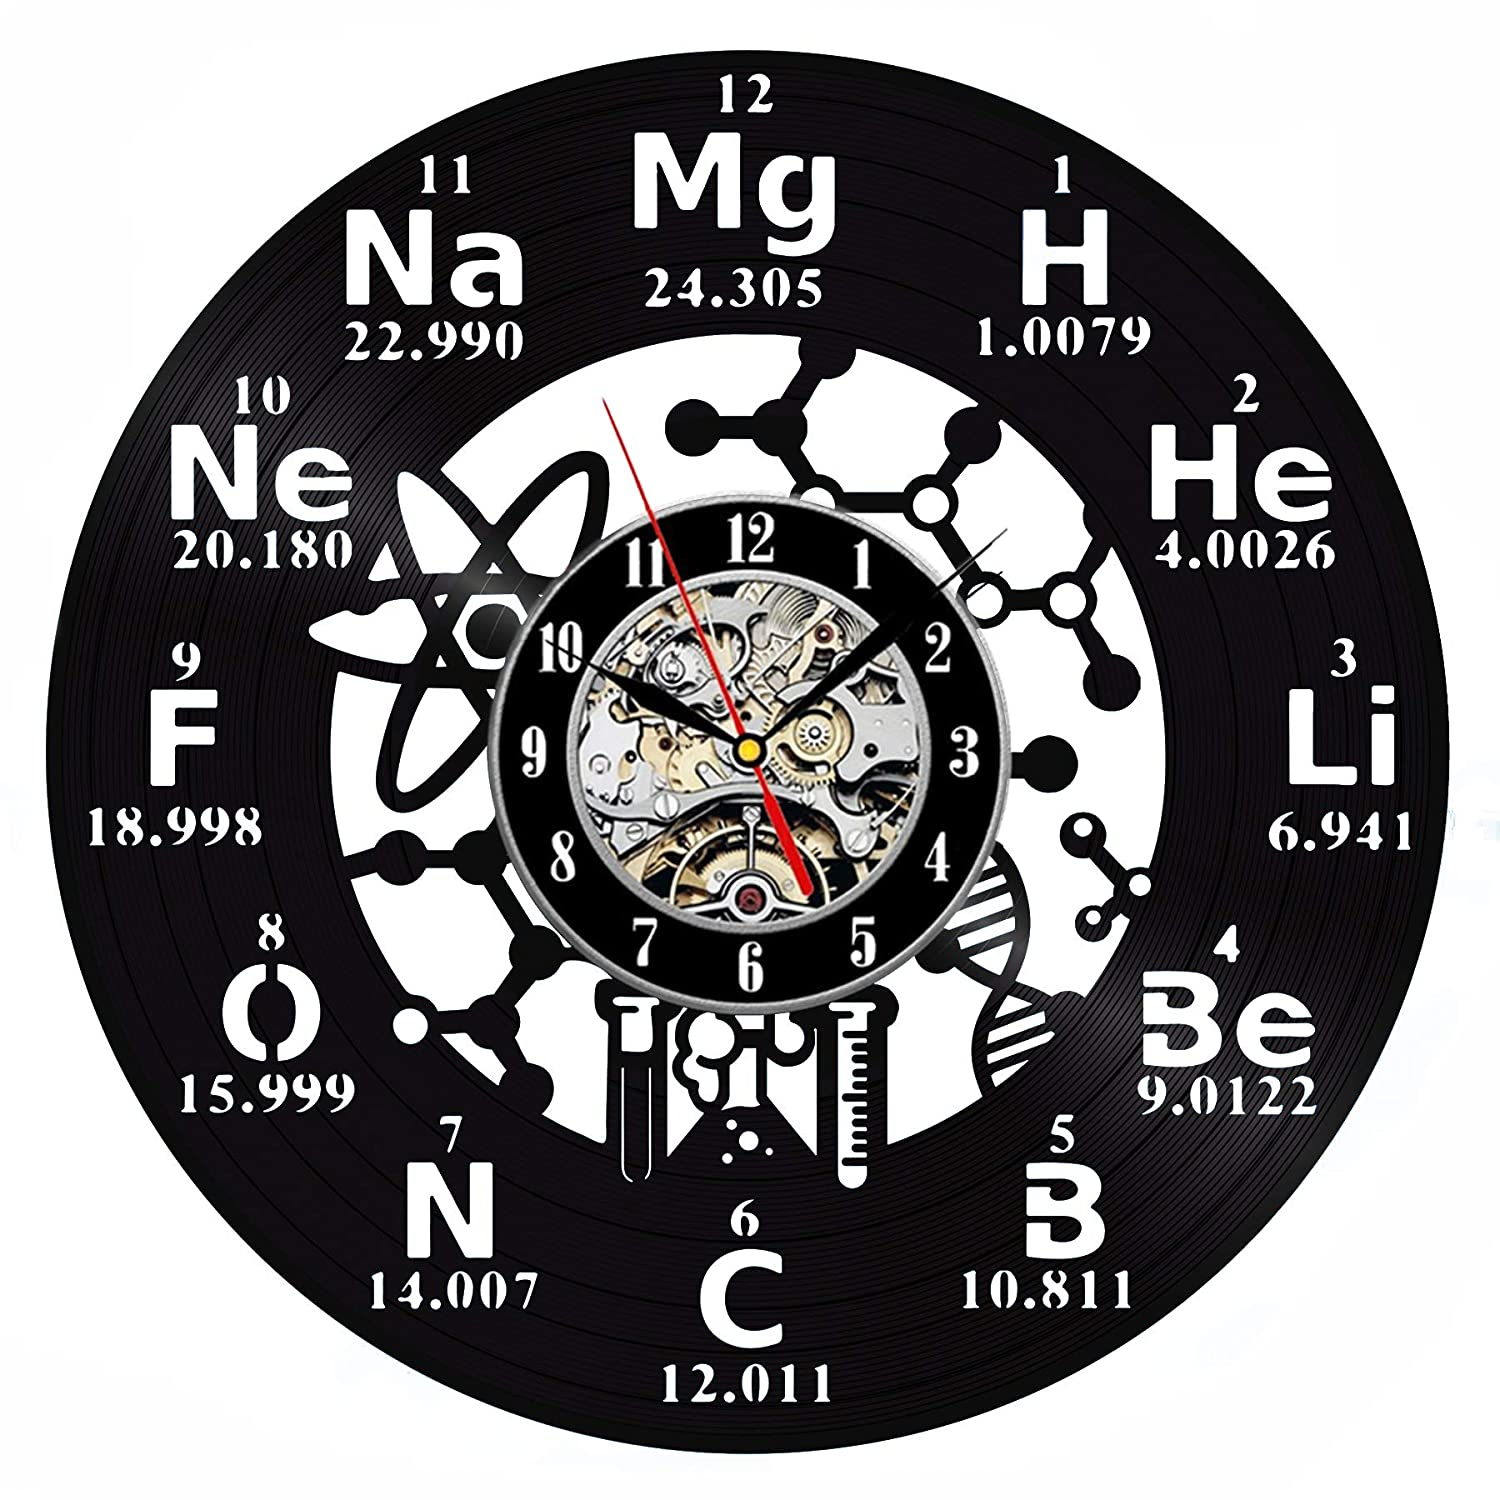 Chemistry Molecule Biochemistry Vinyl Wall Clock 12 in 30cm Black Decor Modern Decorative Vinyl Record Wall Clock This Clock is A Unique Gift to Your Friends and Family for Any Occasion